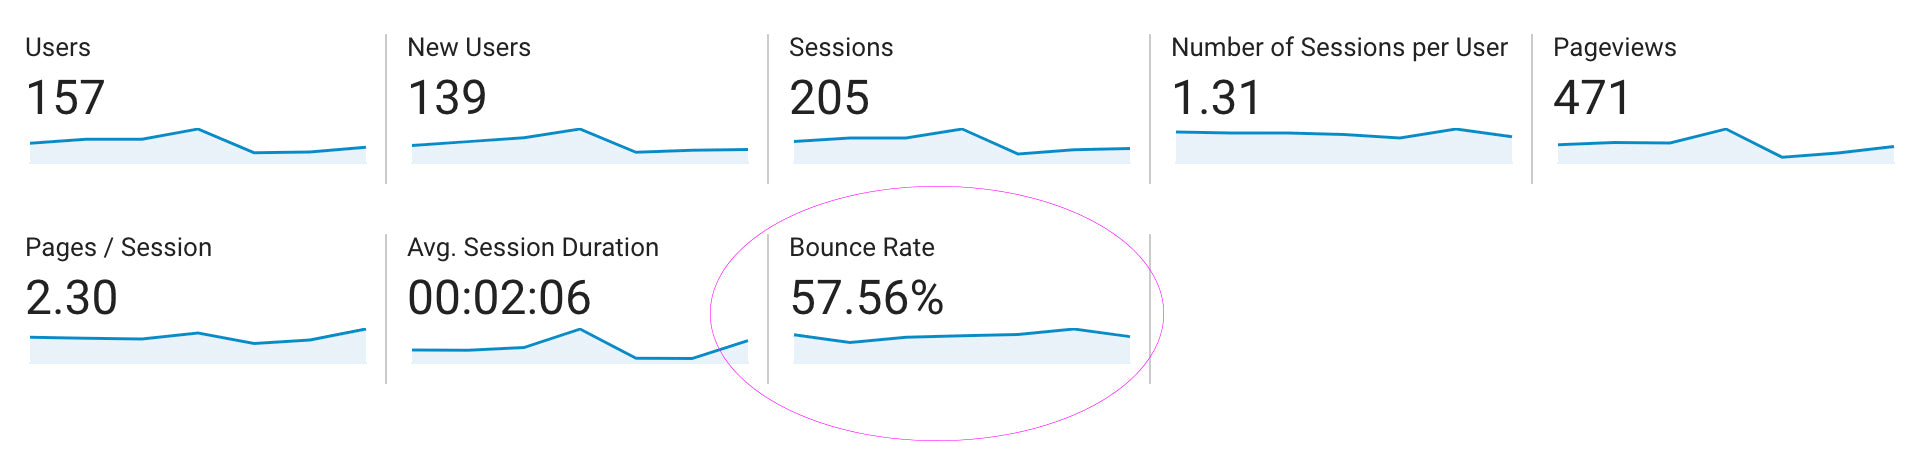 what's a good bounce rate for websites and how to fix the bounce rate if it's high